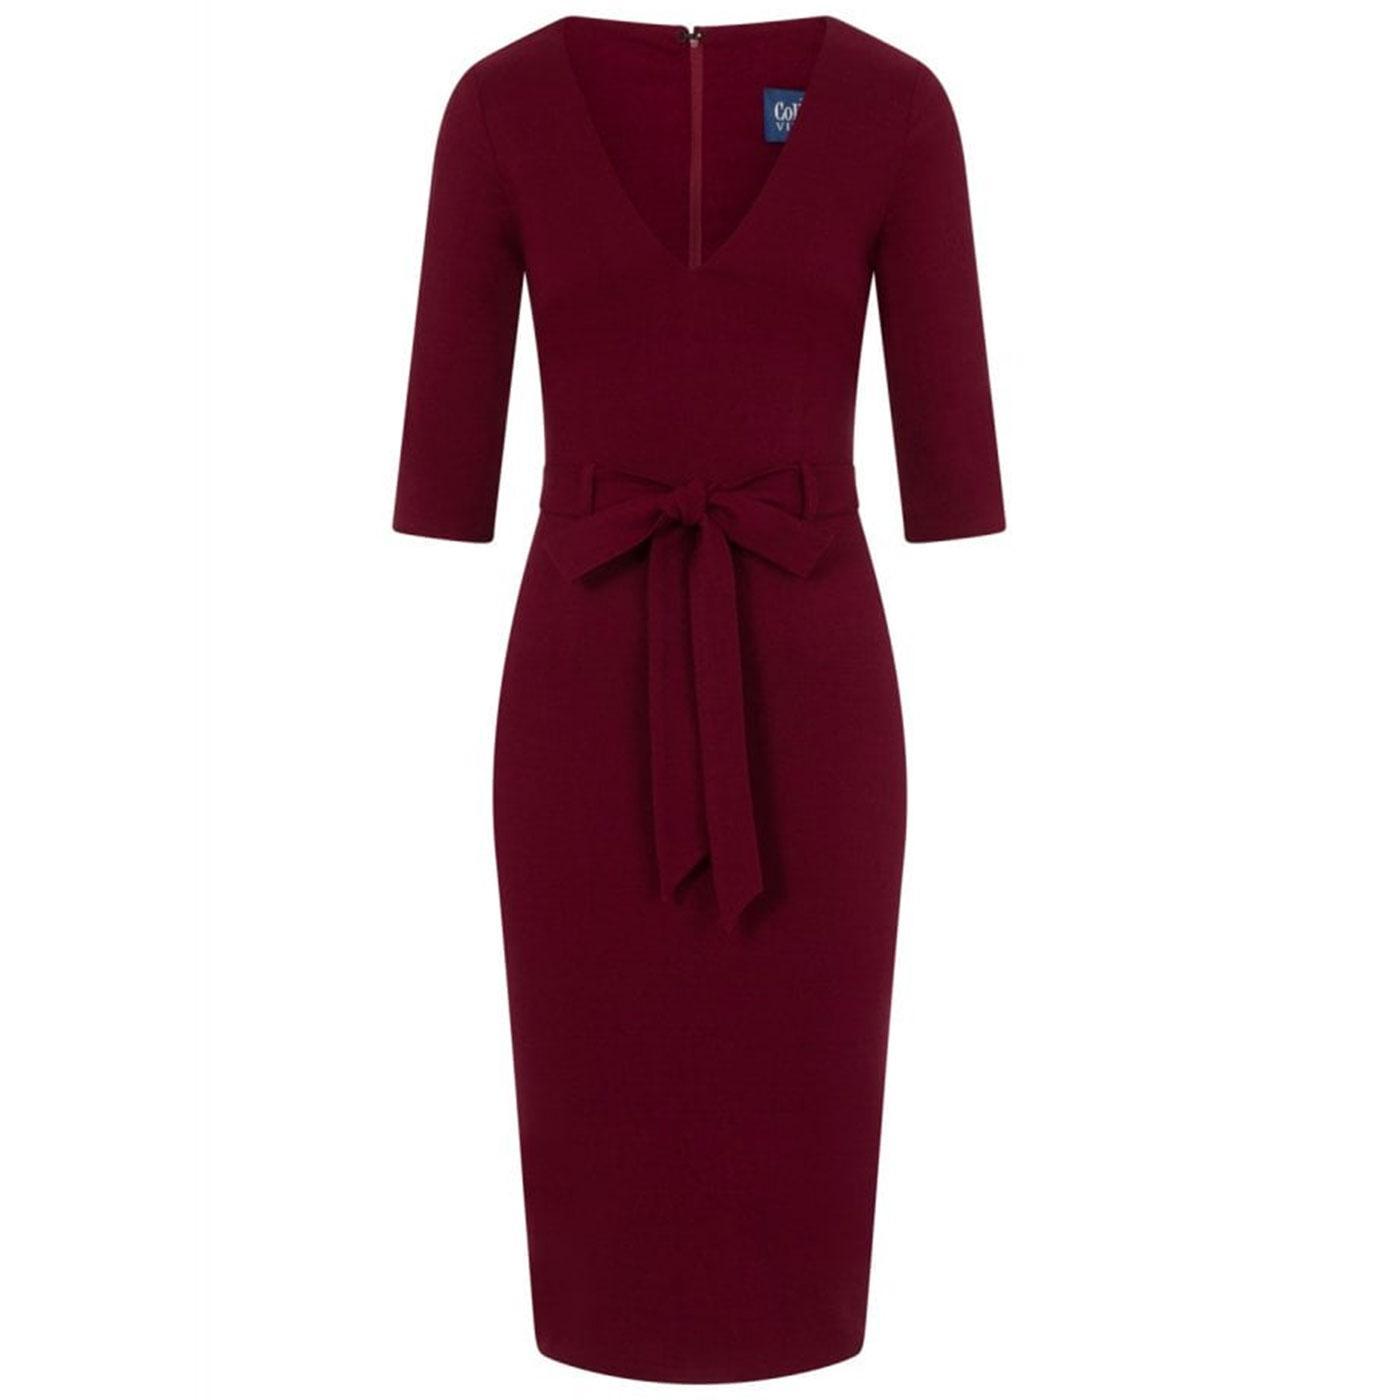 Meadow COLLECTIF Vintage 50s Pencil Dress in Wine